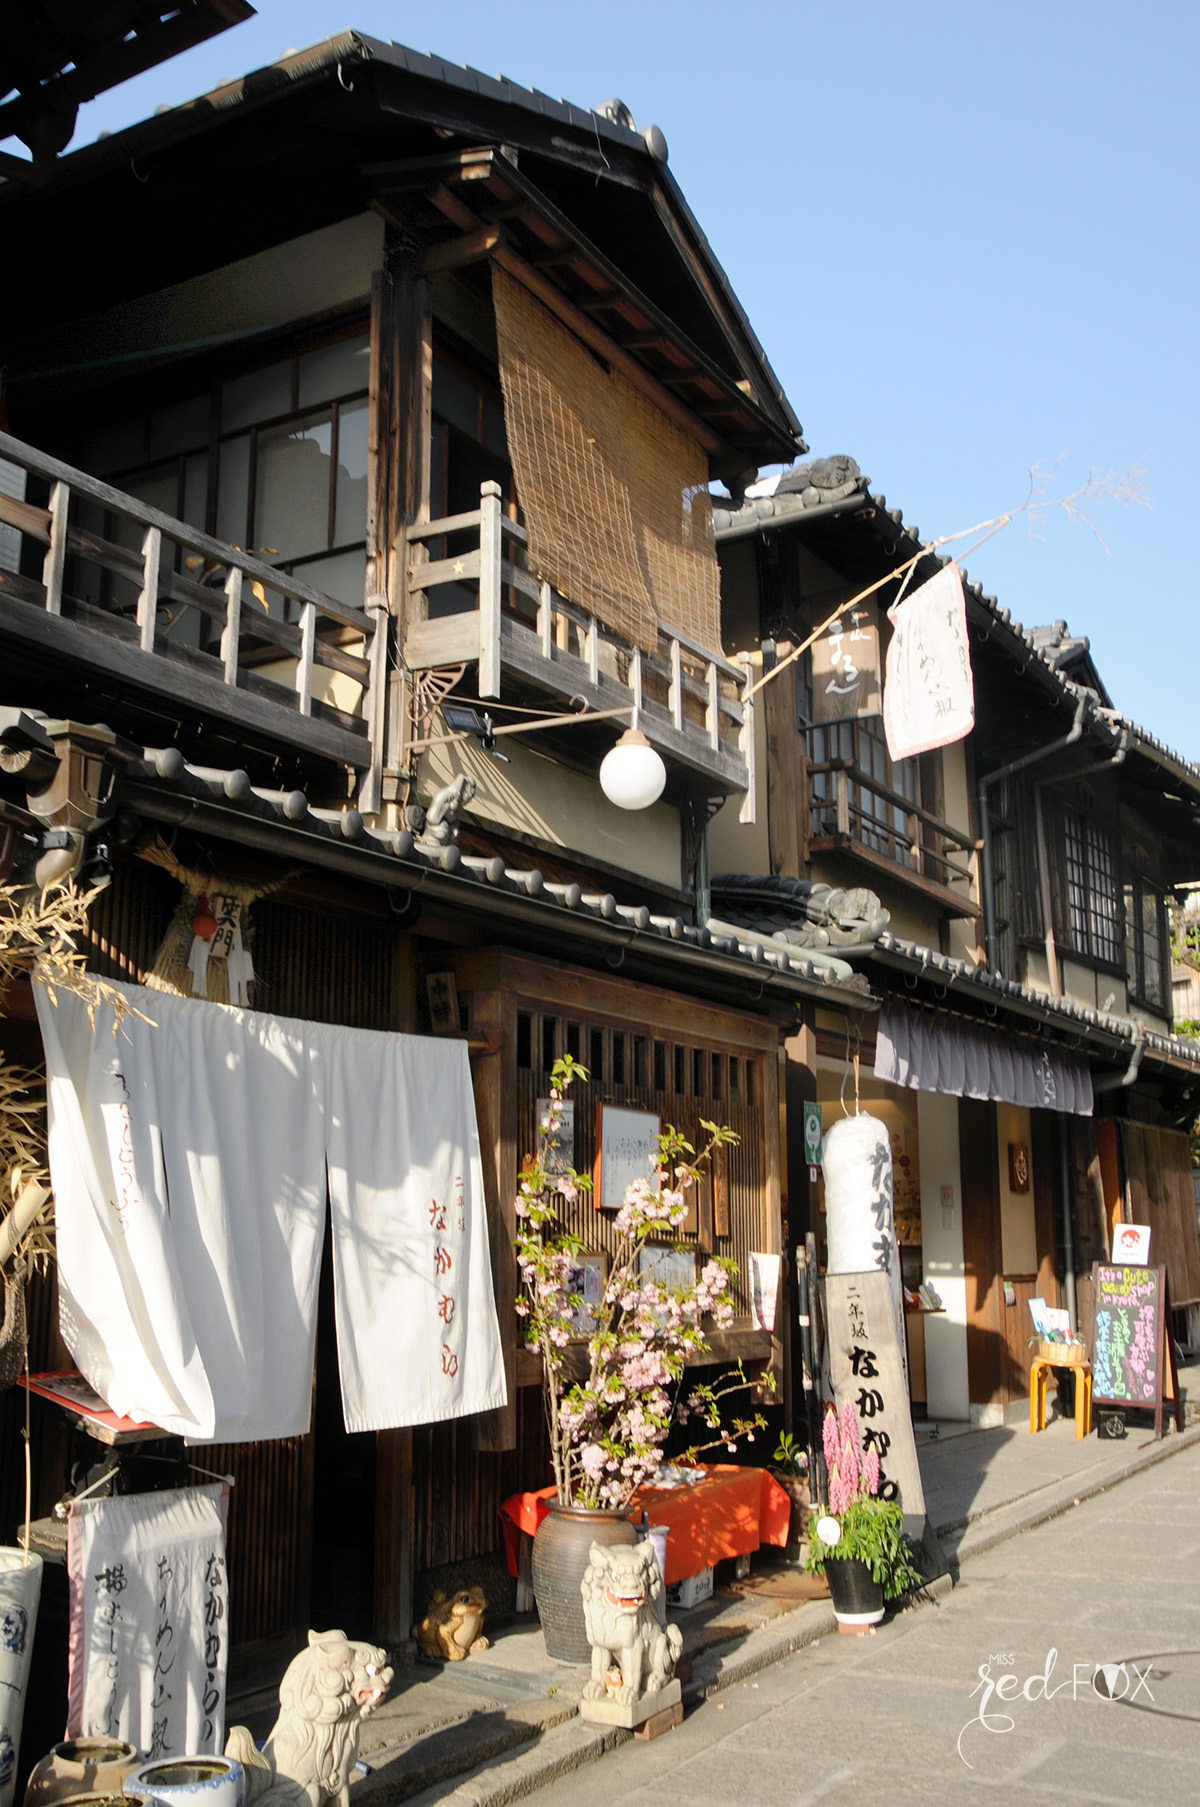 missredfox - Japan - Kyoto - 46